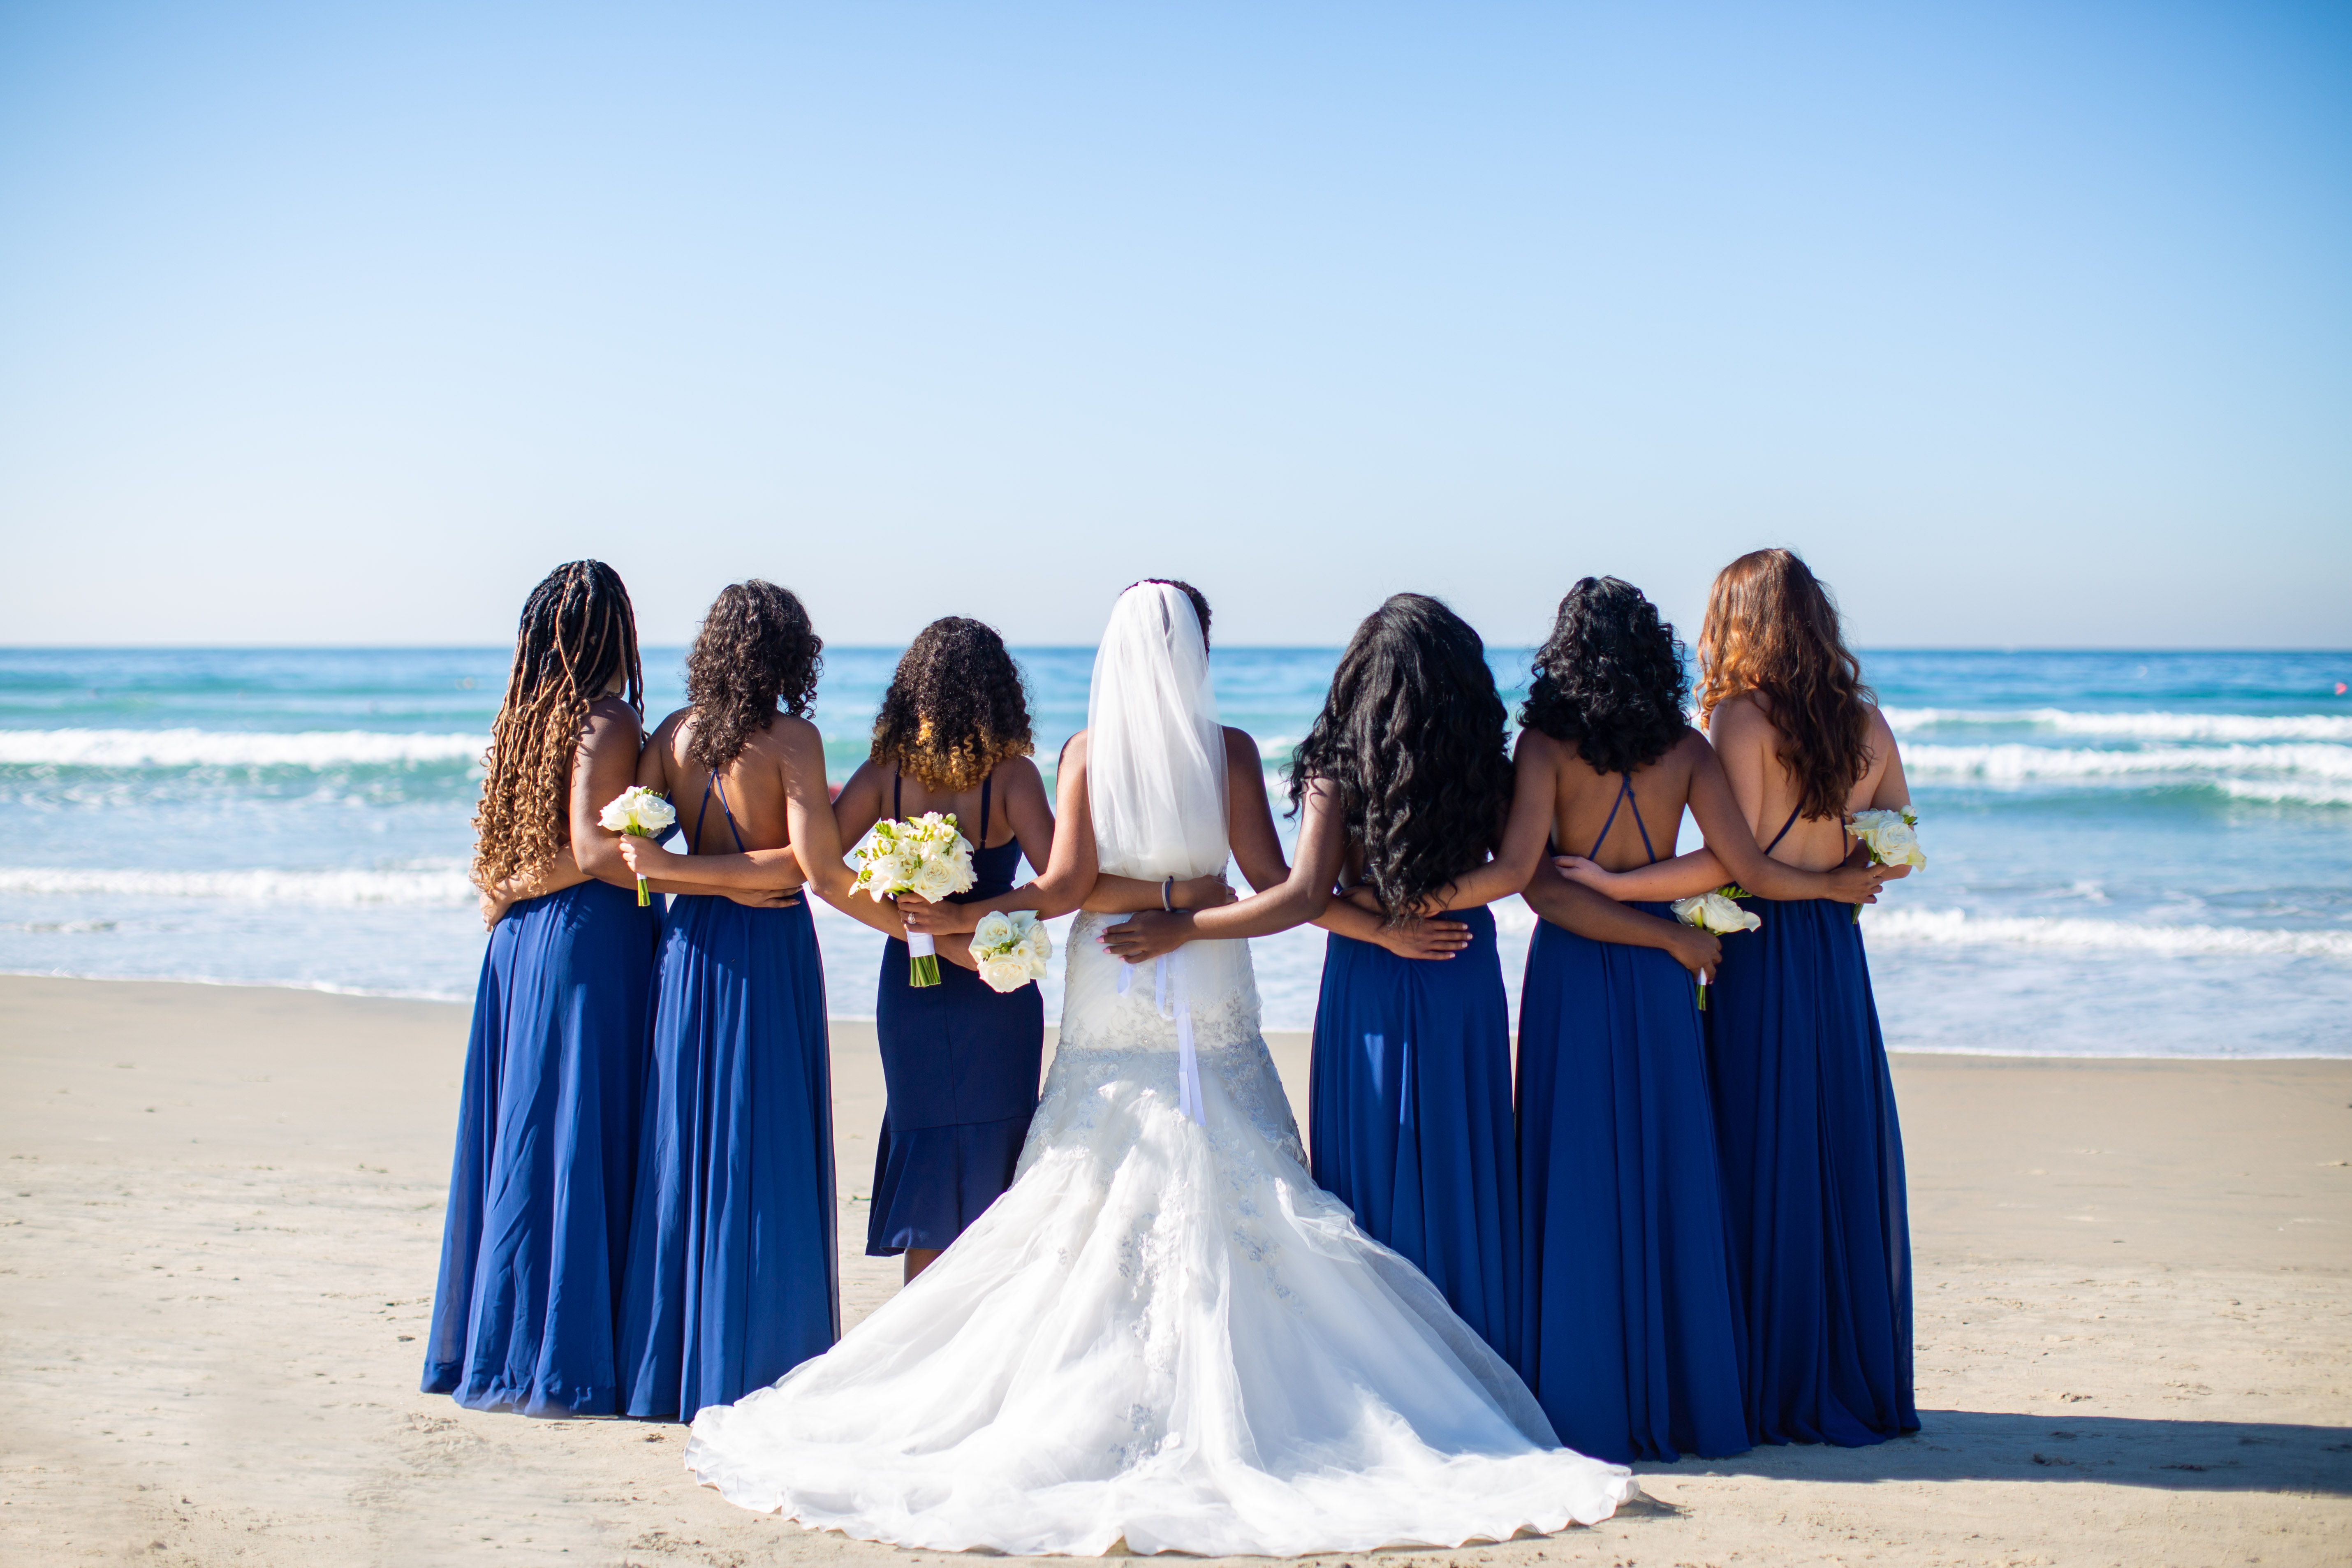 Pin By Dream Beach Wedding San Dieg On Honor Attendant Outfit Inspo San Diego Wedding Venues Dream Beach Wedding San Diego Beach Wedding